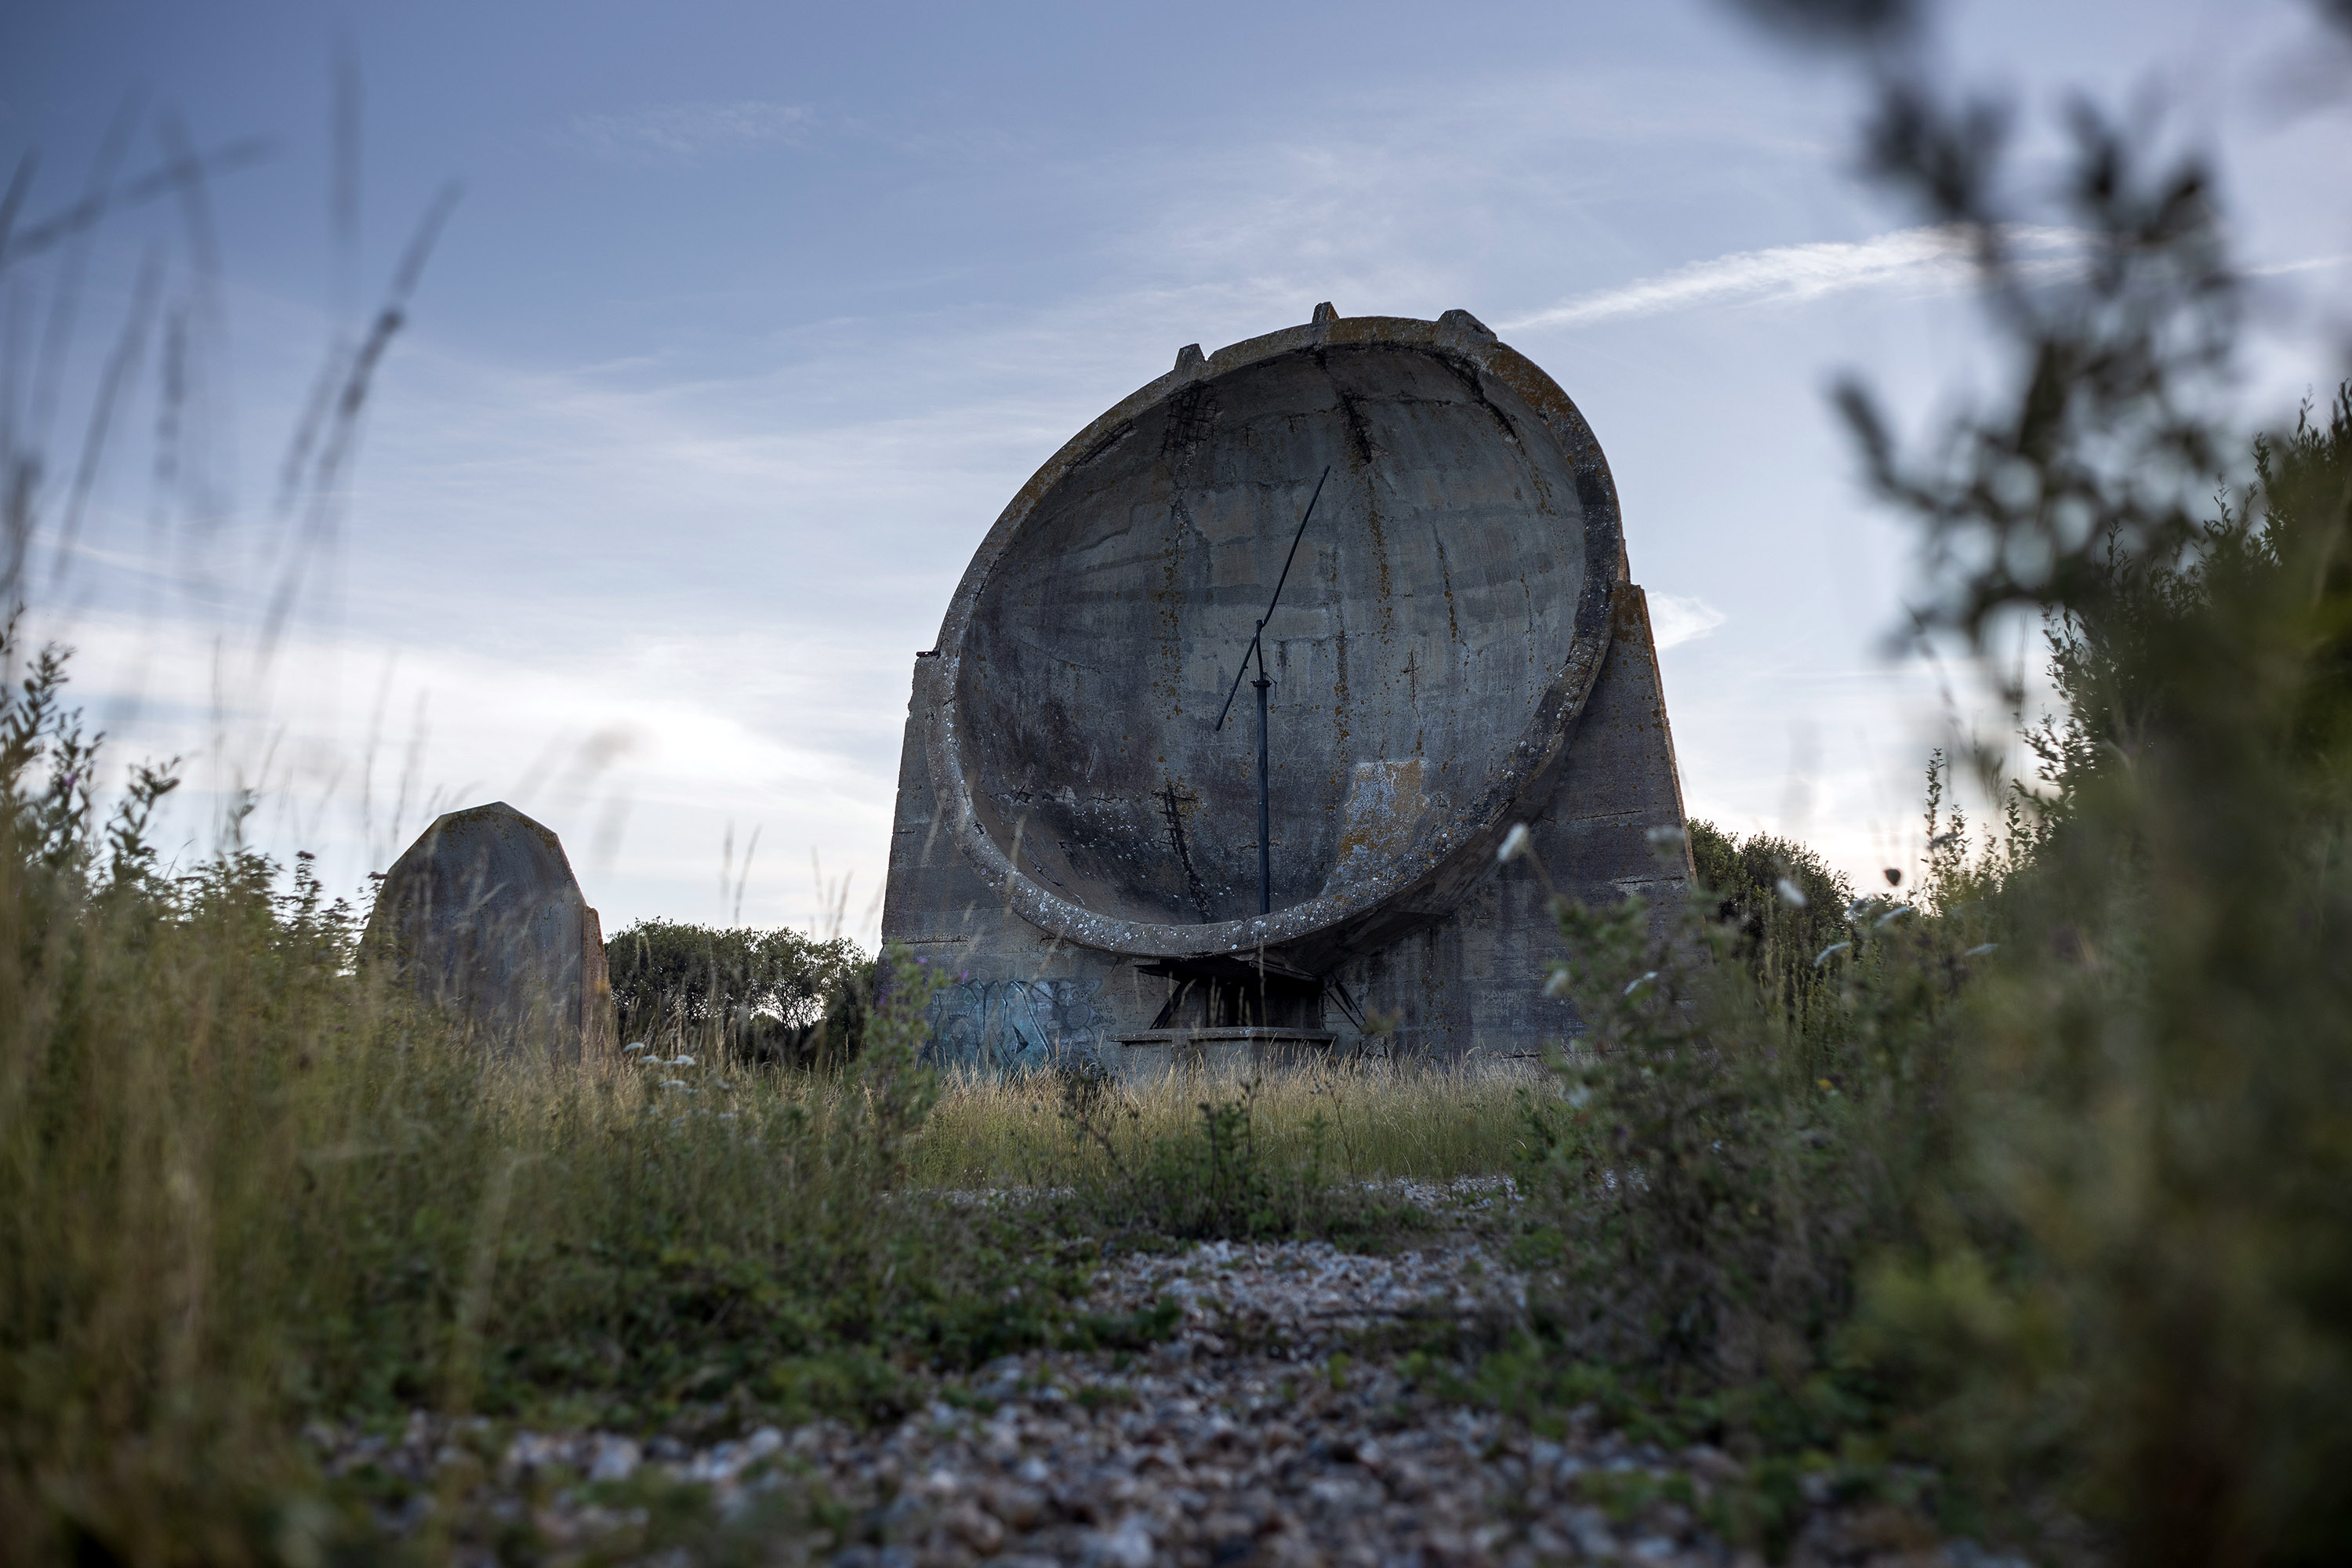 Another angle of the Denge sound mirrors